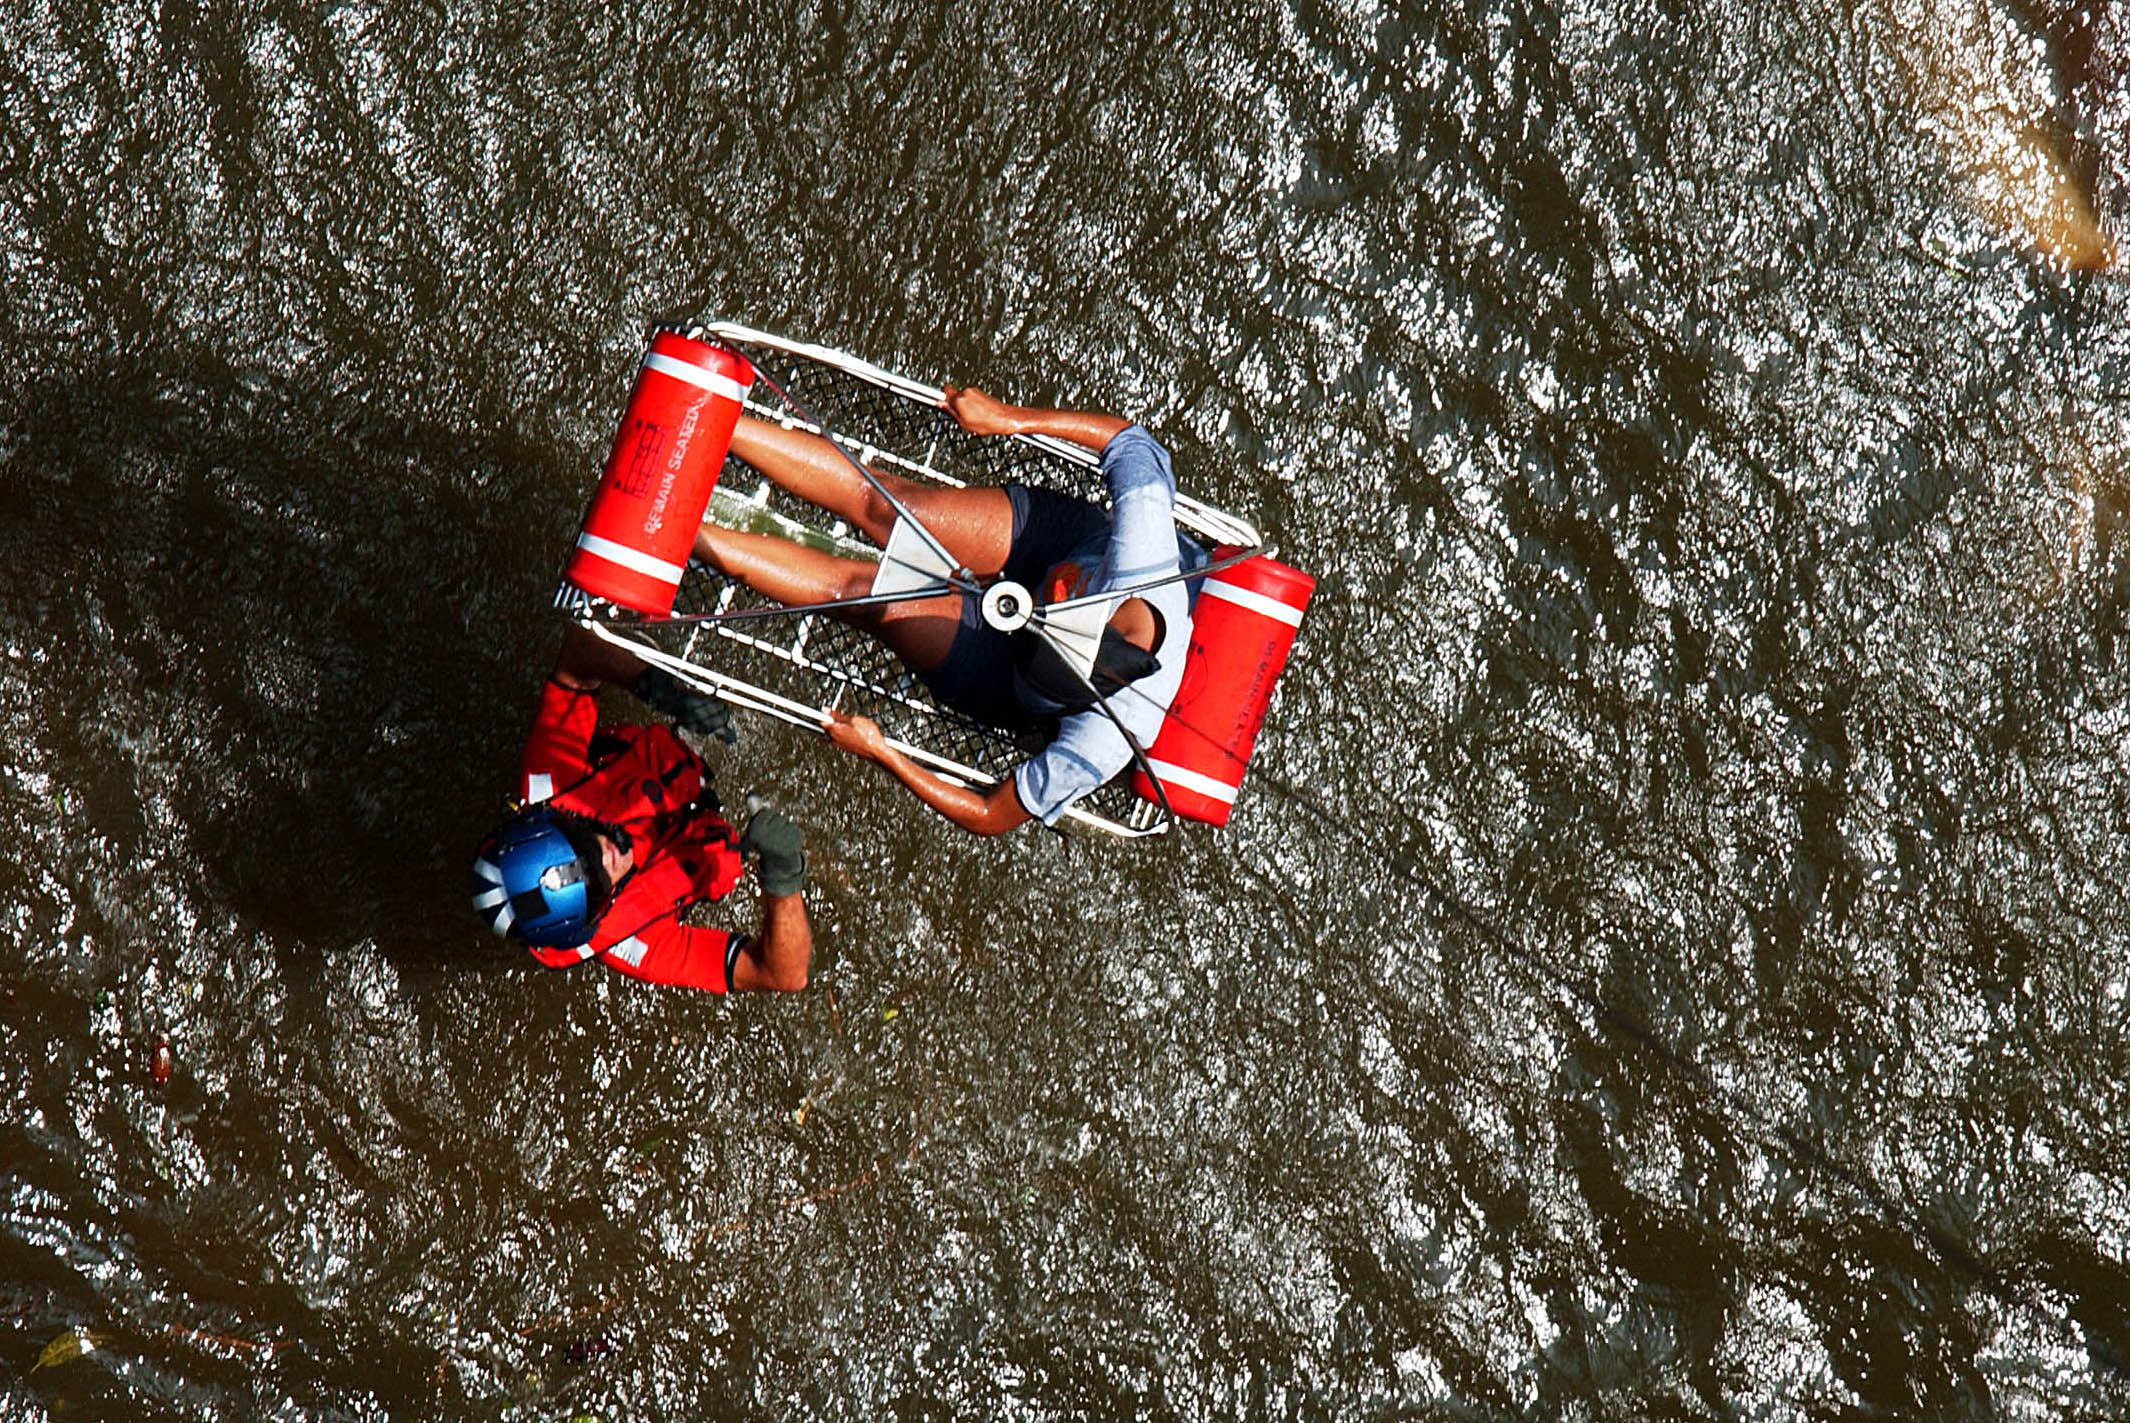 U.S. Coast Guard Petty Officer 2nd Class Scott D. Rady of Tampa, Fla., gives the signal to hoist-up a pregnant woman from her apartment during a search and rescue (SAR) flight in New Orleans on Aug. 31, 2005. US Coast Guard Photo